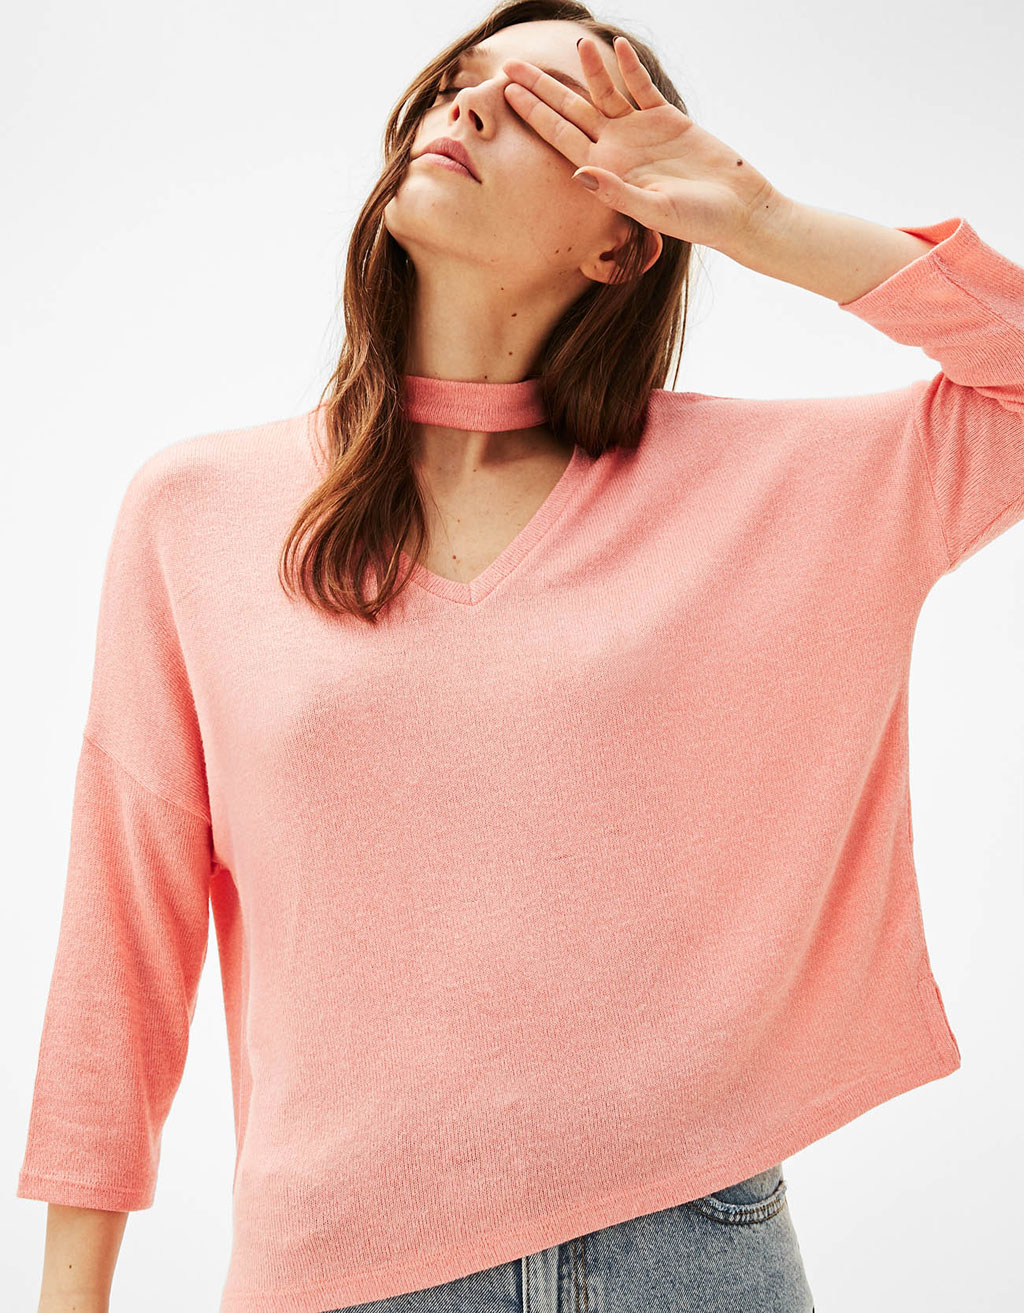 Oversized 3/4 length sleeve sweater with choker necklace